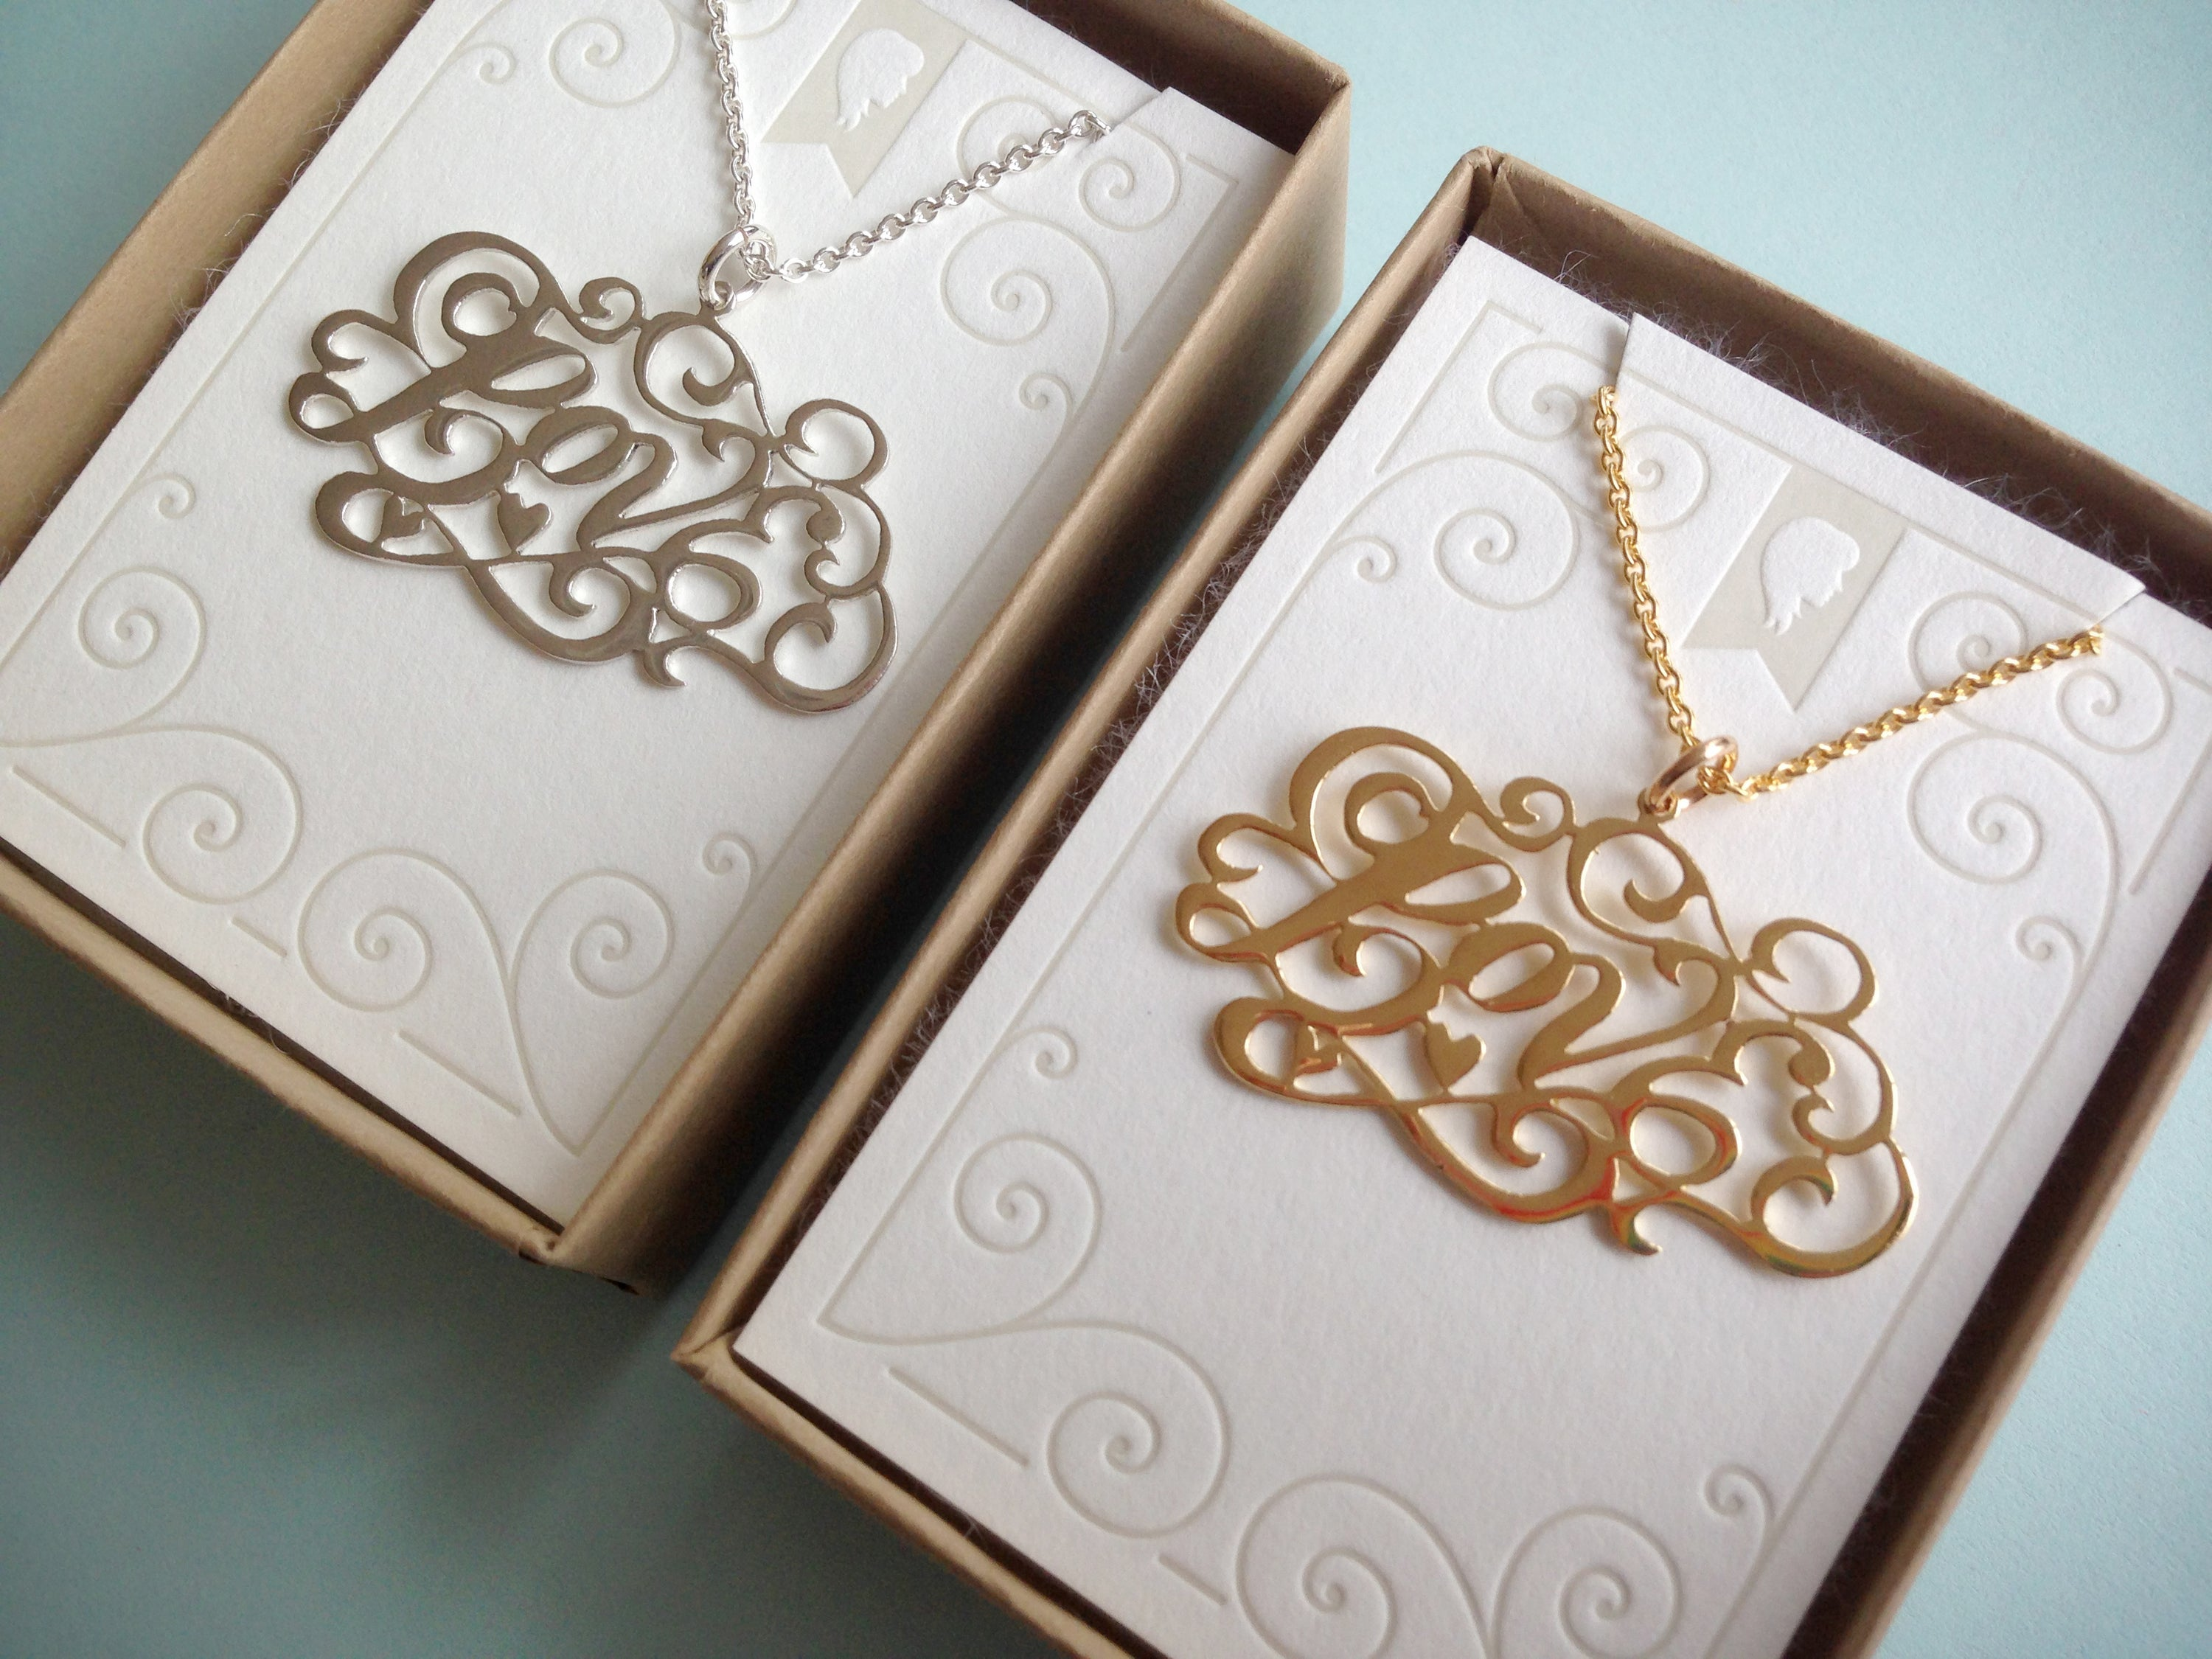 Image of Love Necklace